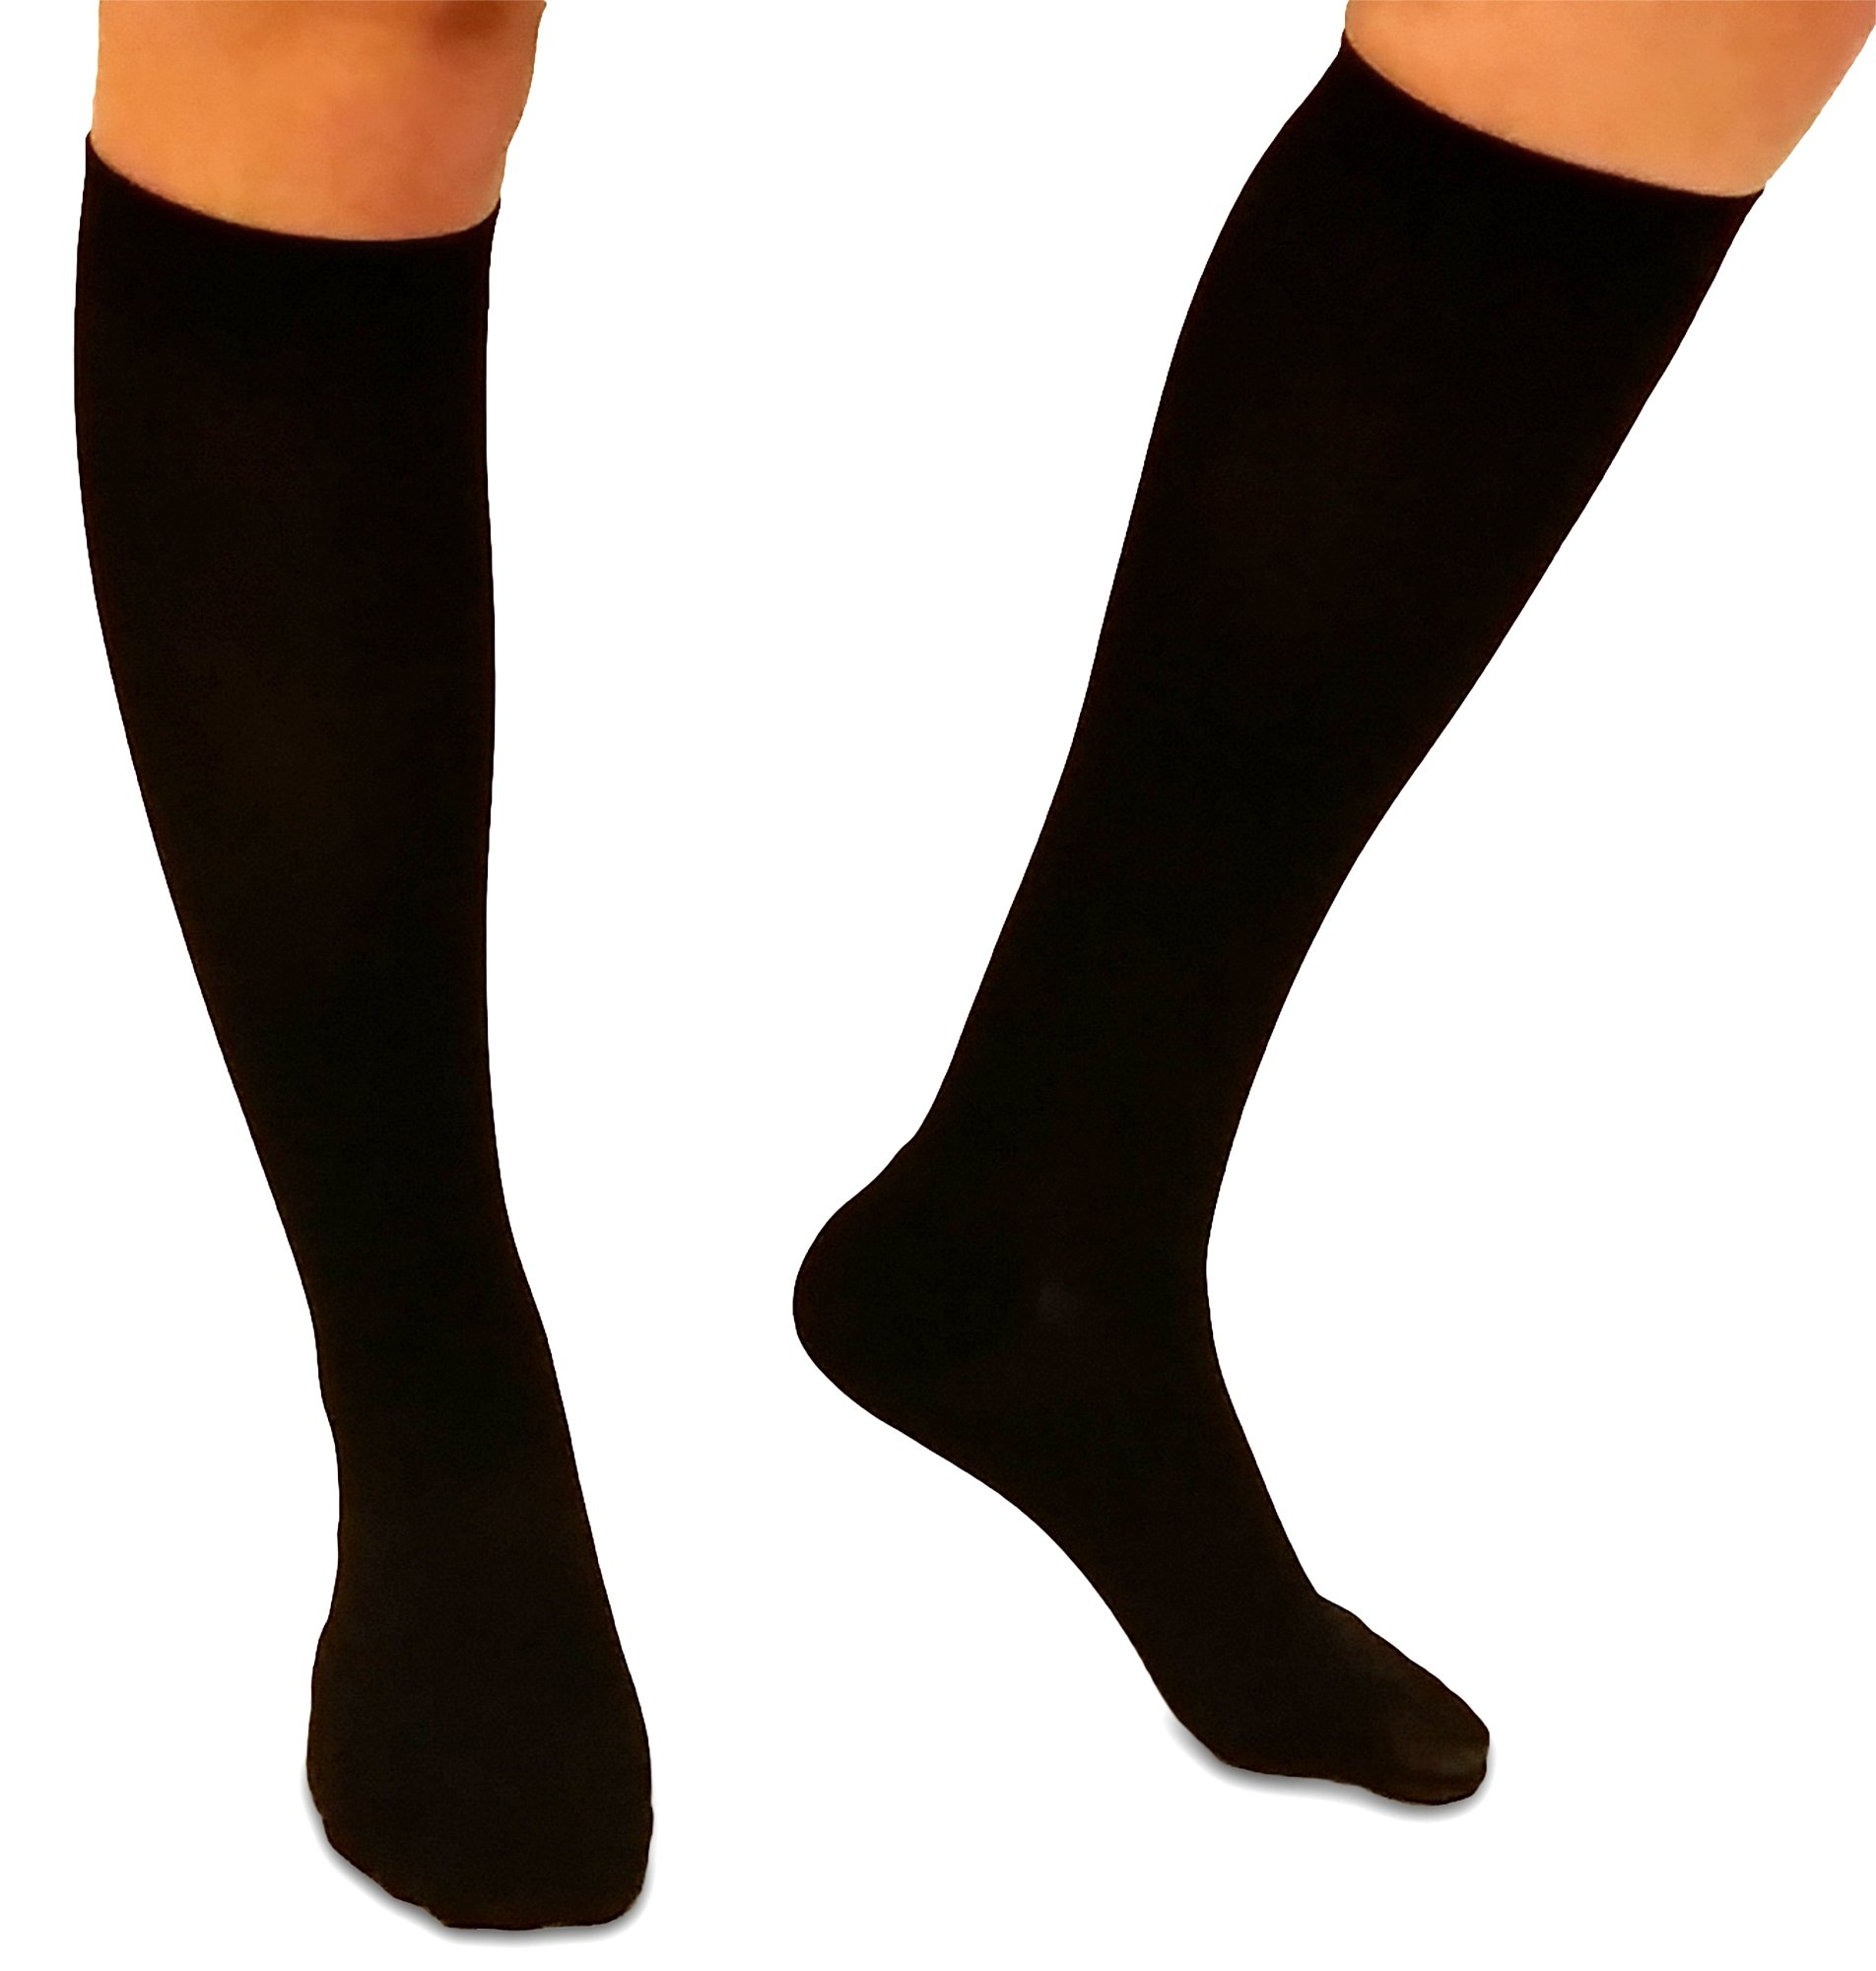 Compression Socks, Extra Firm Support - Knee High Gradient Compression, Unisex, mmhg Rating Tested and Quality Assured. Designed to help return blood back to your heart and promote your leg health